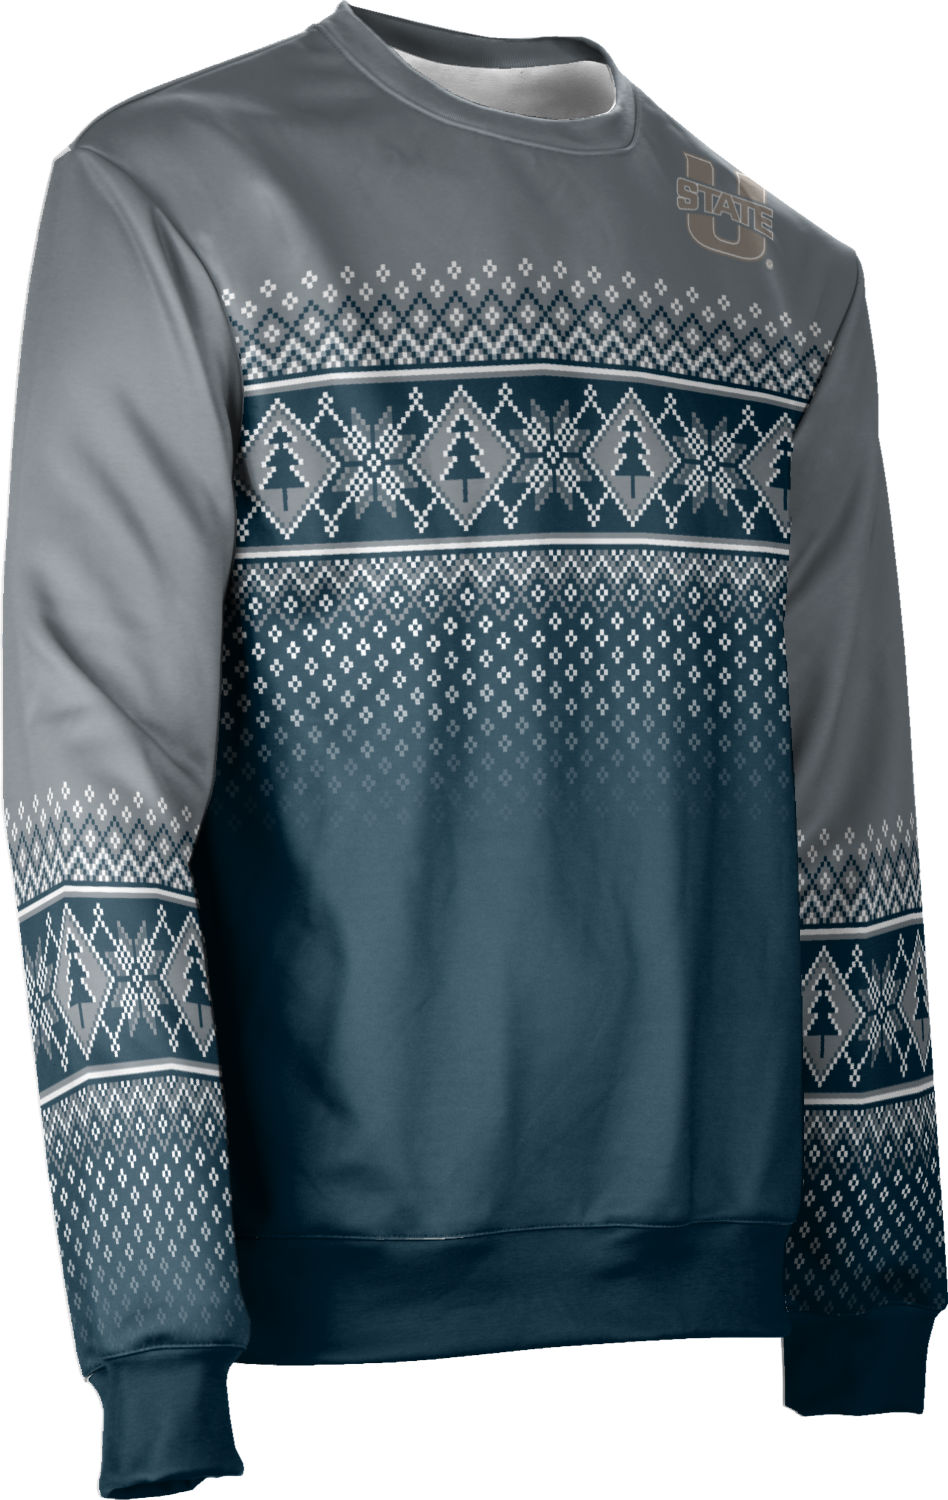 Utah State University: Ugly Holiday Unisex Sweater - Rejoice